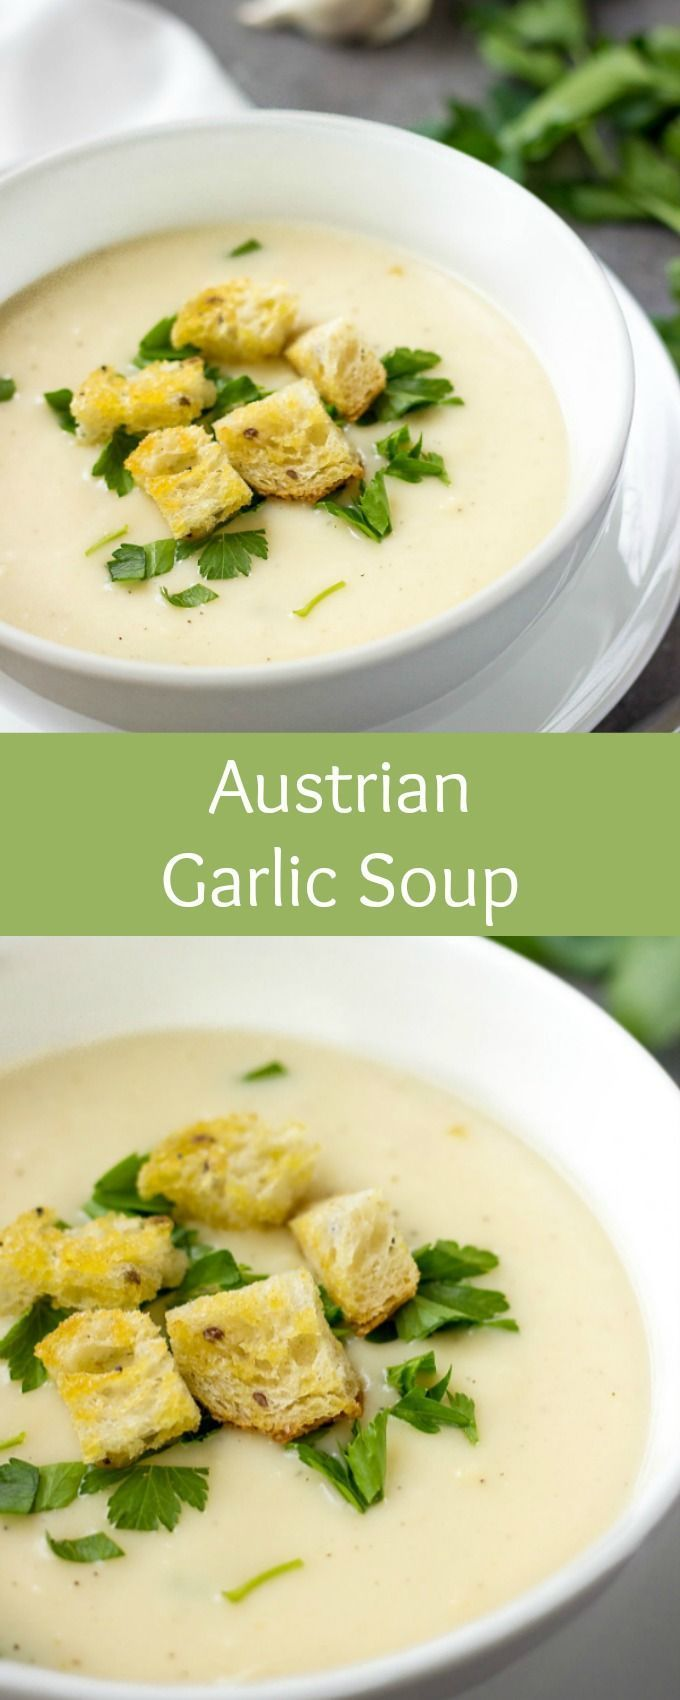 Looking for quick soup recipes? Austrian Garlic Soup is the QUICKEST and most delicious recipe you'll ever need. Made in under 15 minutes, this easy soup recipe is addictive. You'll lick the bowl and ask for more! One of the best comfort food recipes. #souprecipes #comfortfood #winterrecipes #comfortfoodfeast